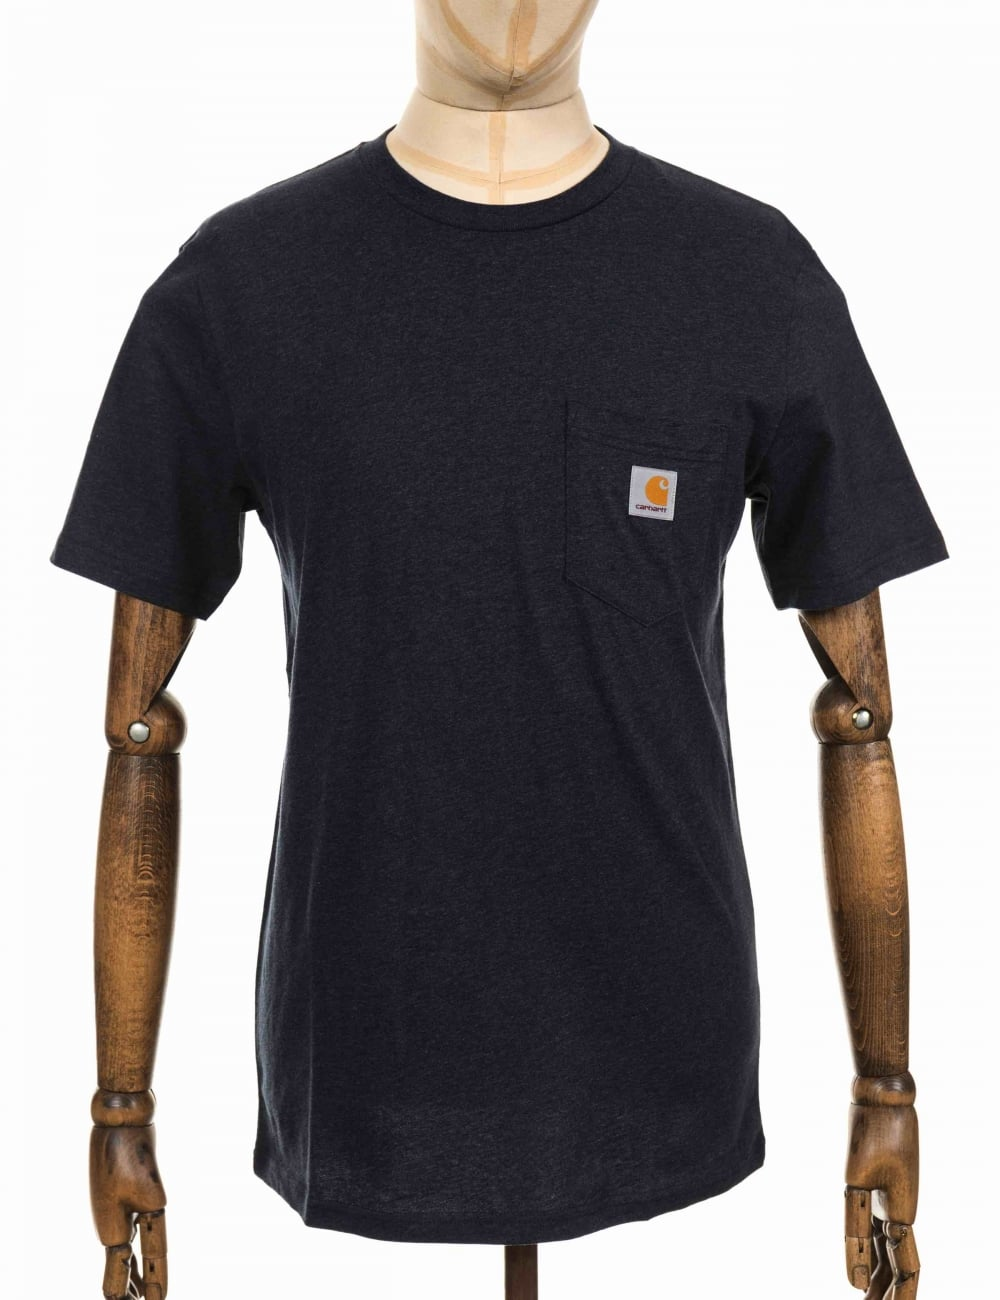 d7814becccca2 Carhartt WIP S/S Pocket T-shirt - Dark Navy Heather - Clothing from ...